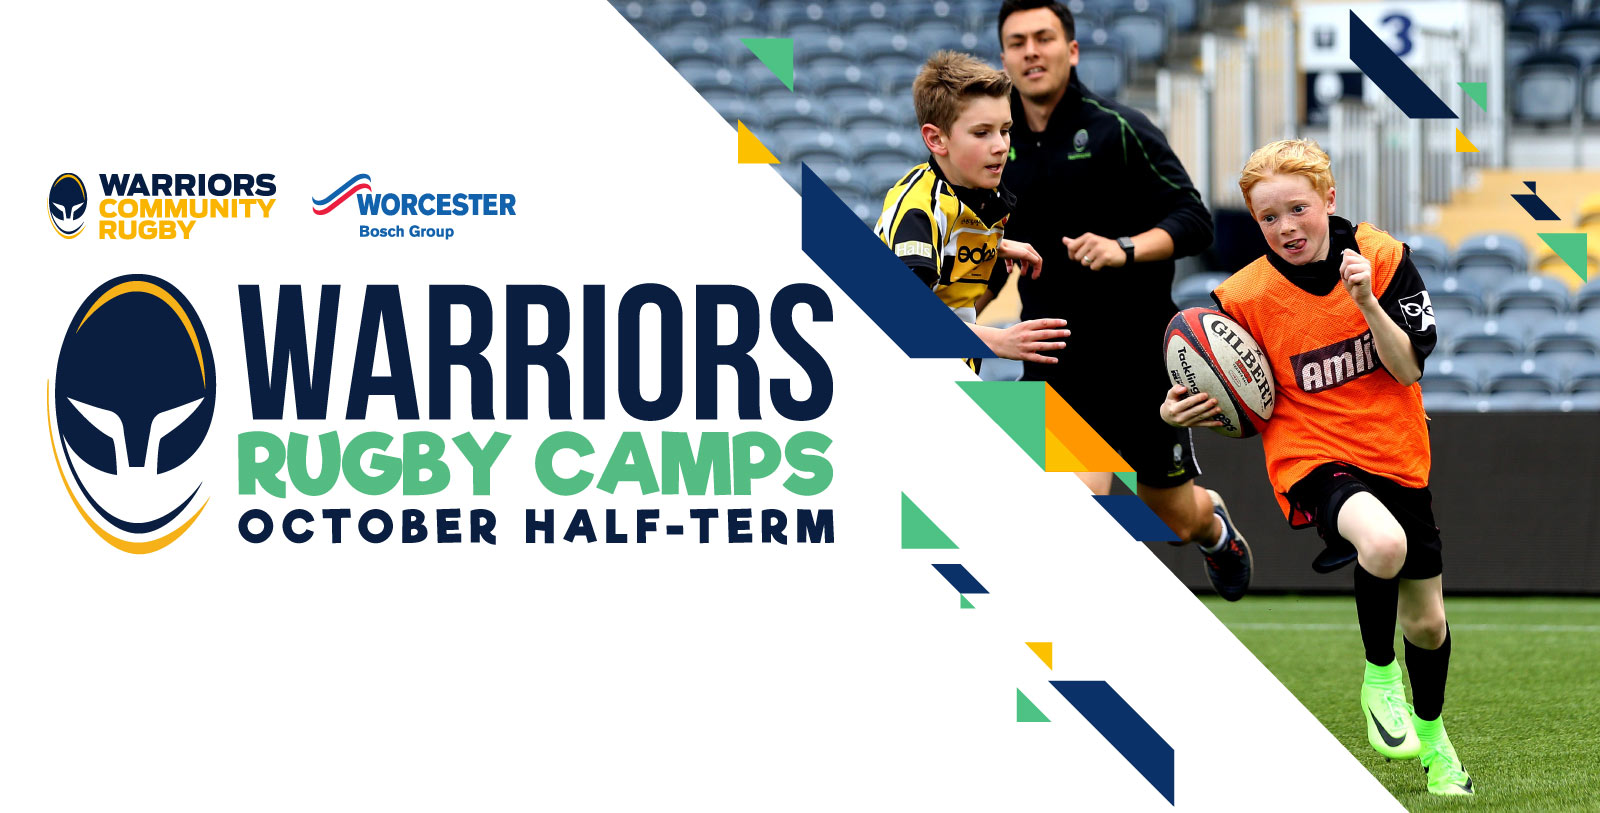 Warriors Rugby Camps return in October